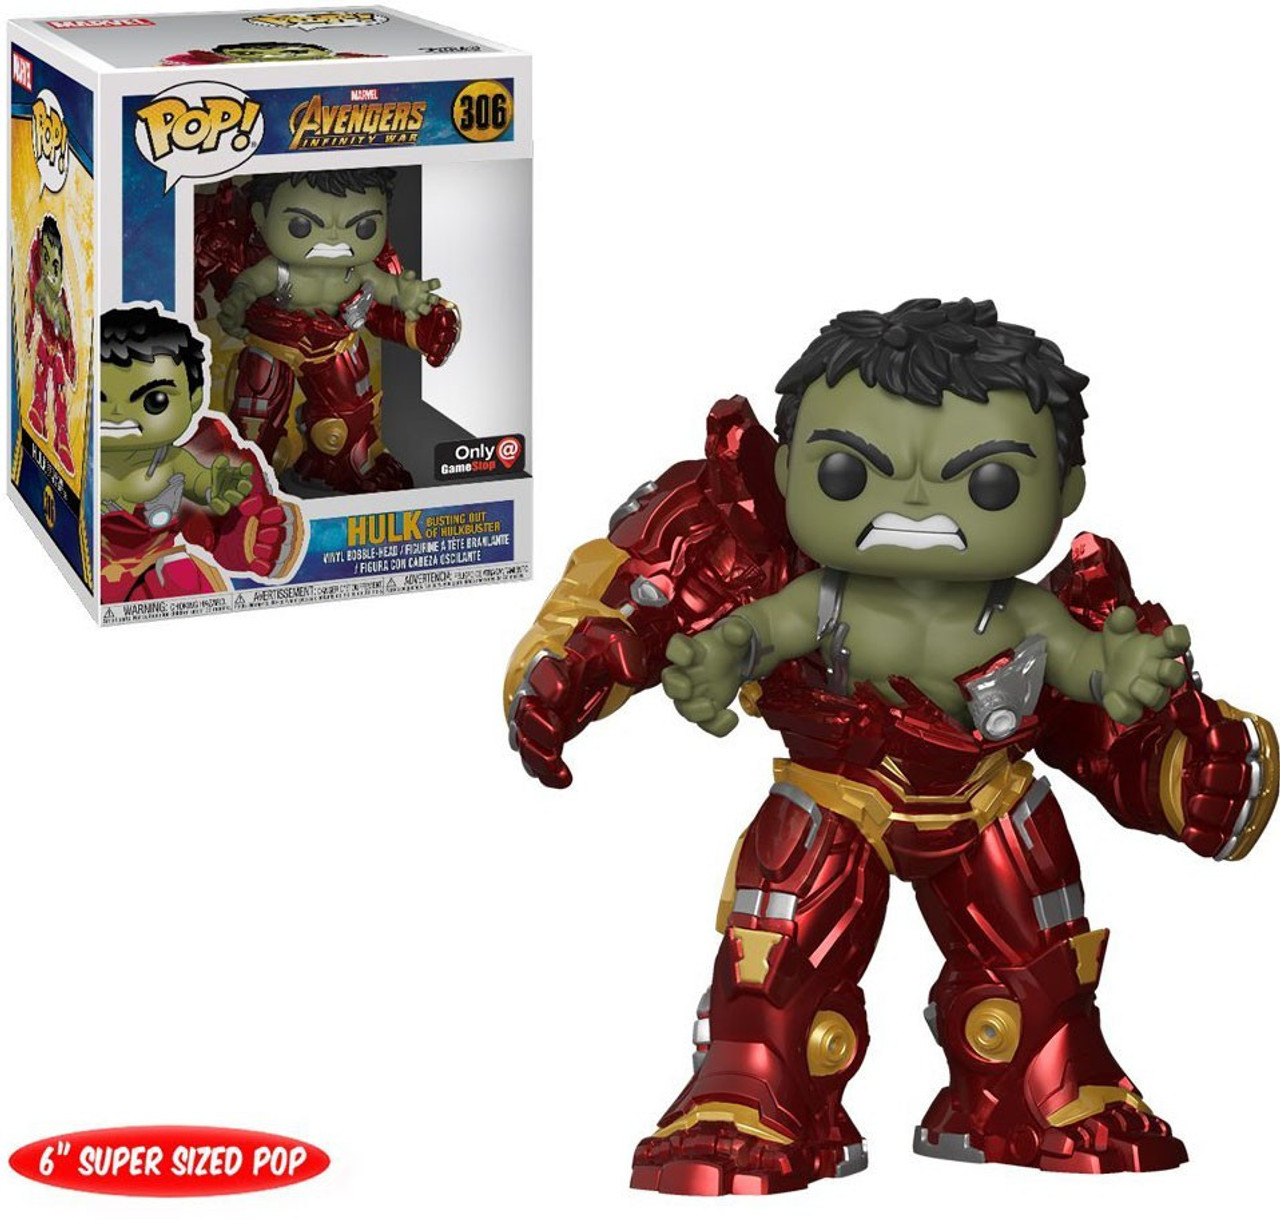 Avengers Infinity War Funko Pop Marvel Hulk Busting Out Of Hulkbuster Exclusive 6 Inch Vinyl Figure 306 Super Sized